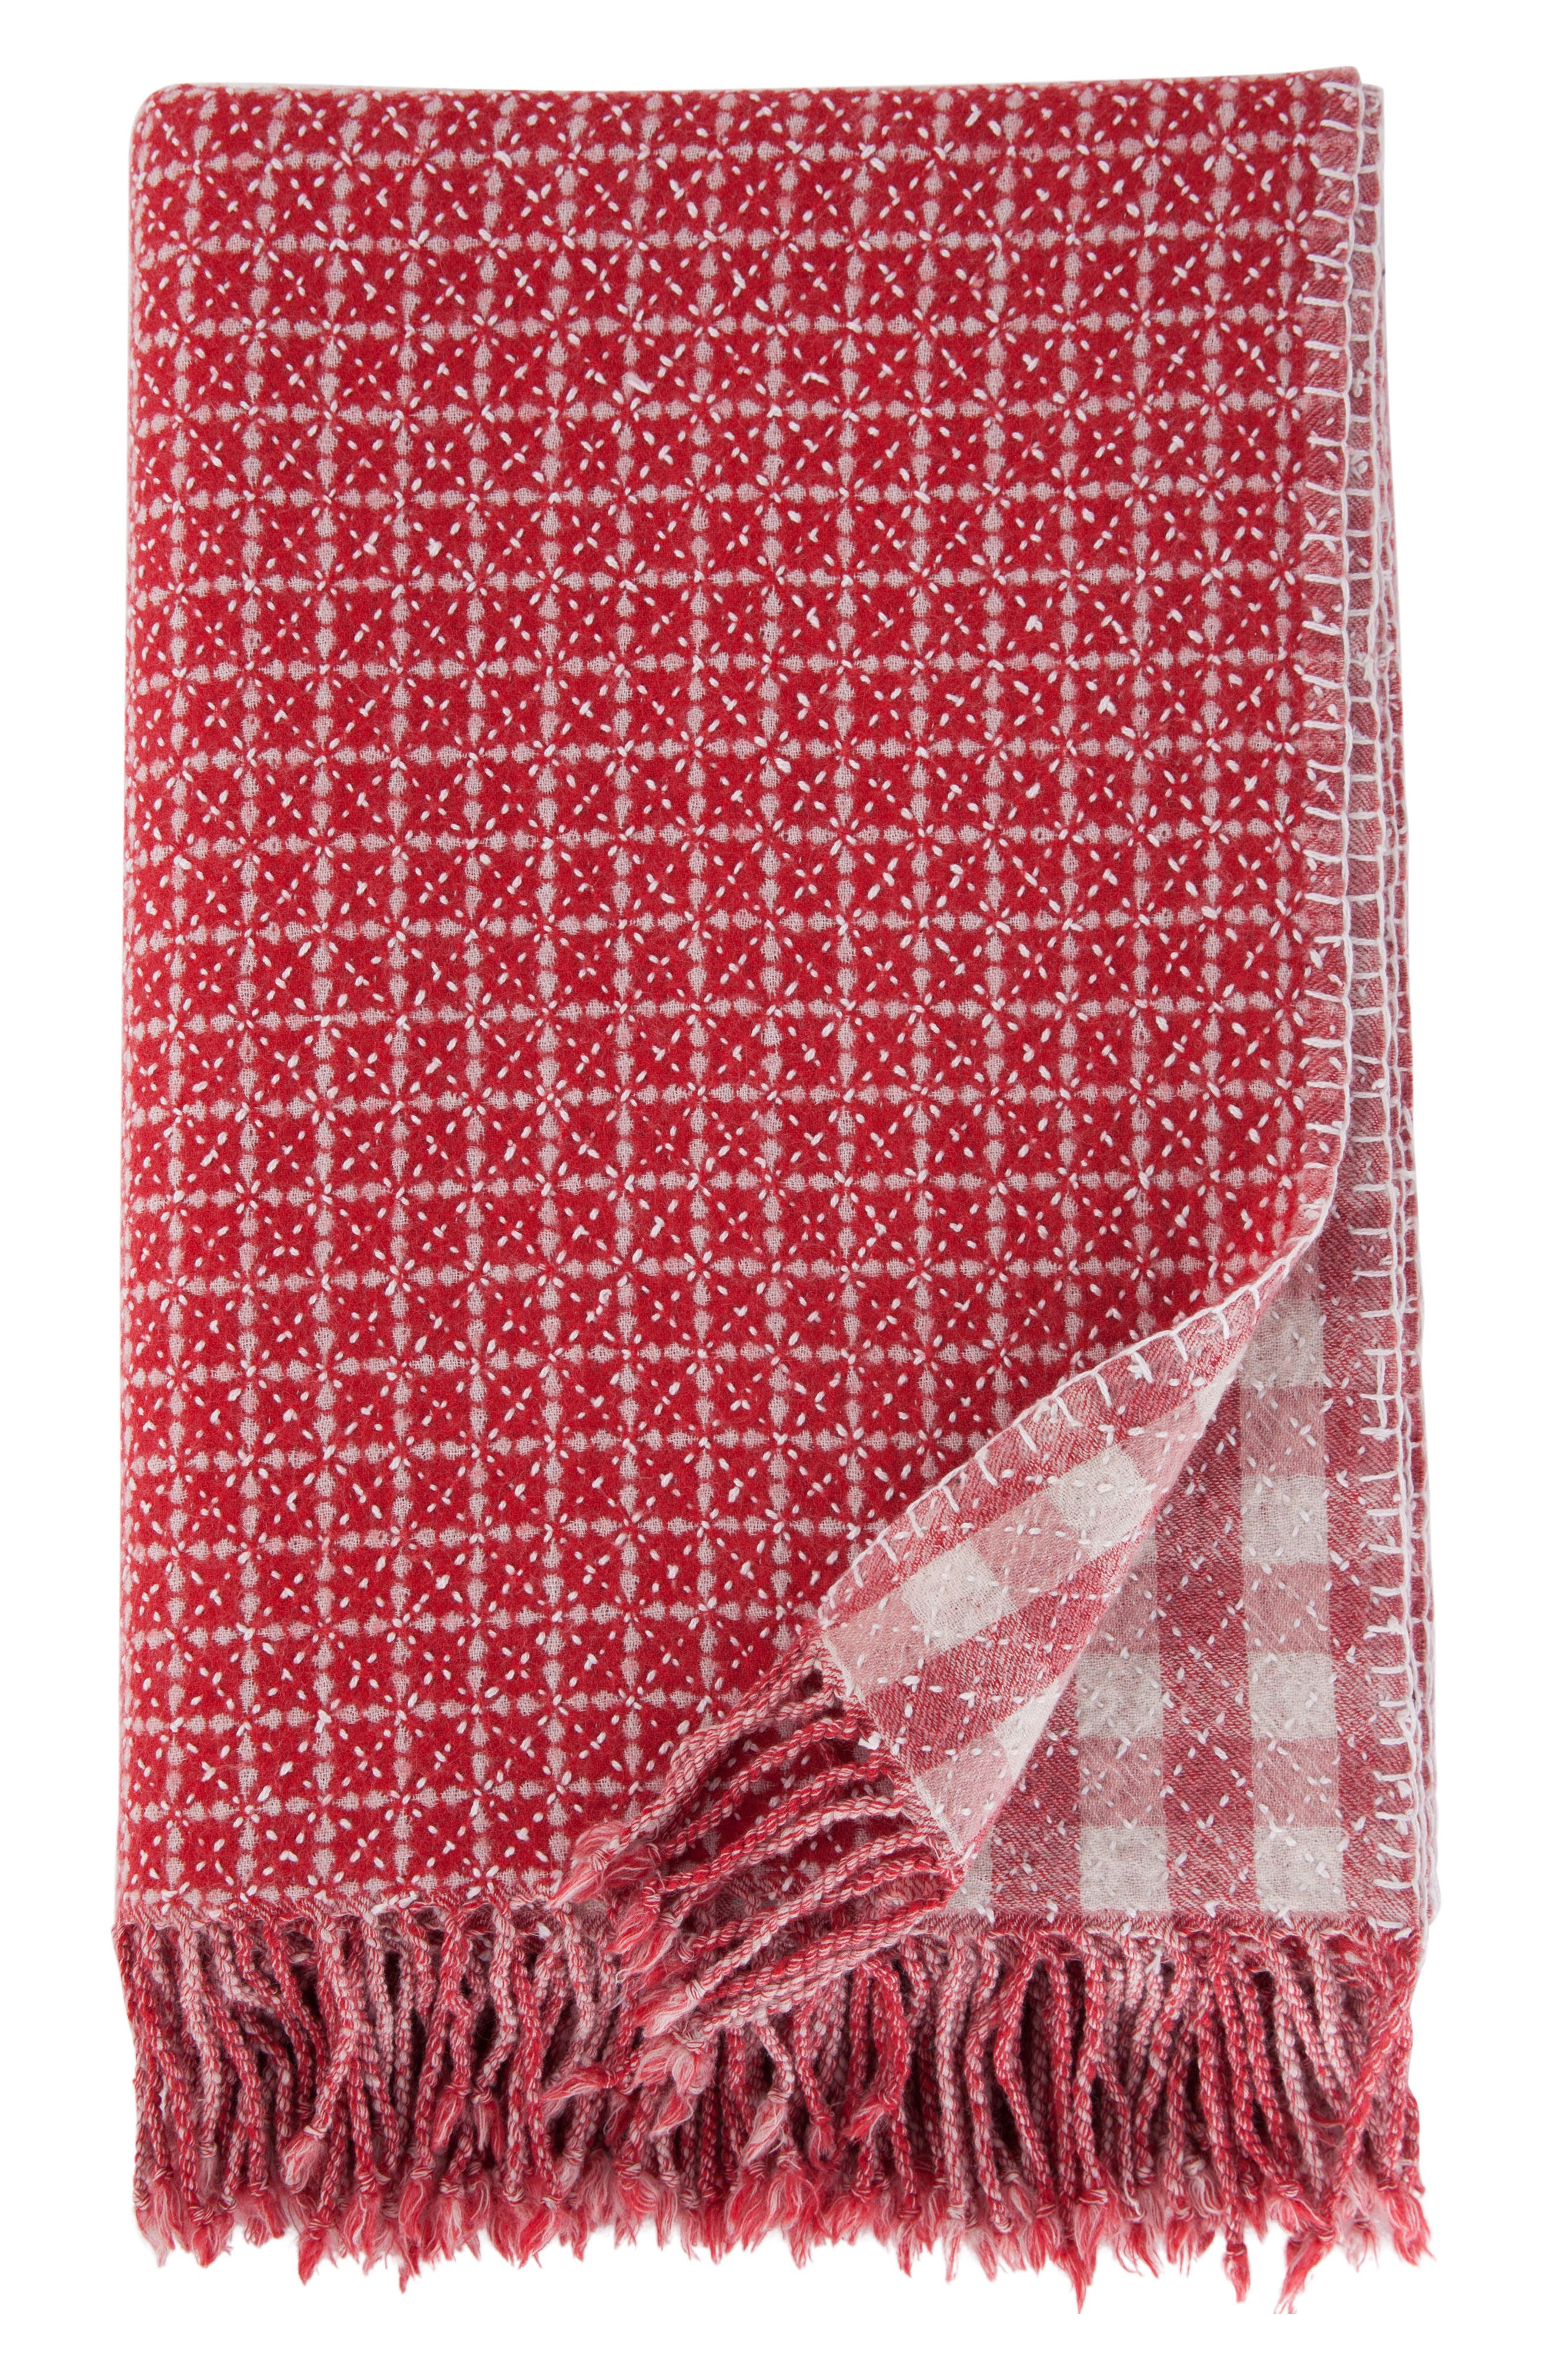 Reversible Hand Embroidered Merino Wool Blanket,                         Main,                         color, RED